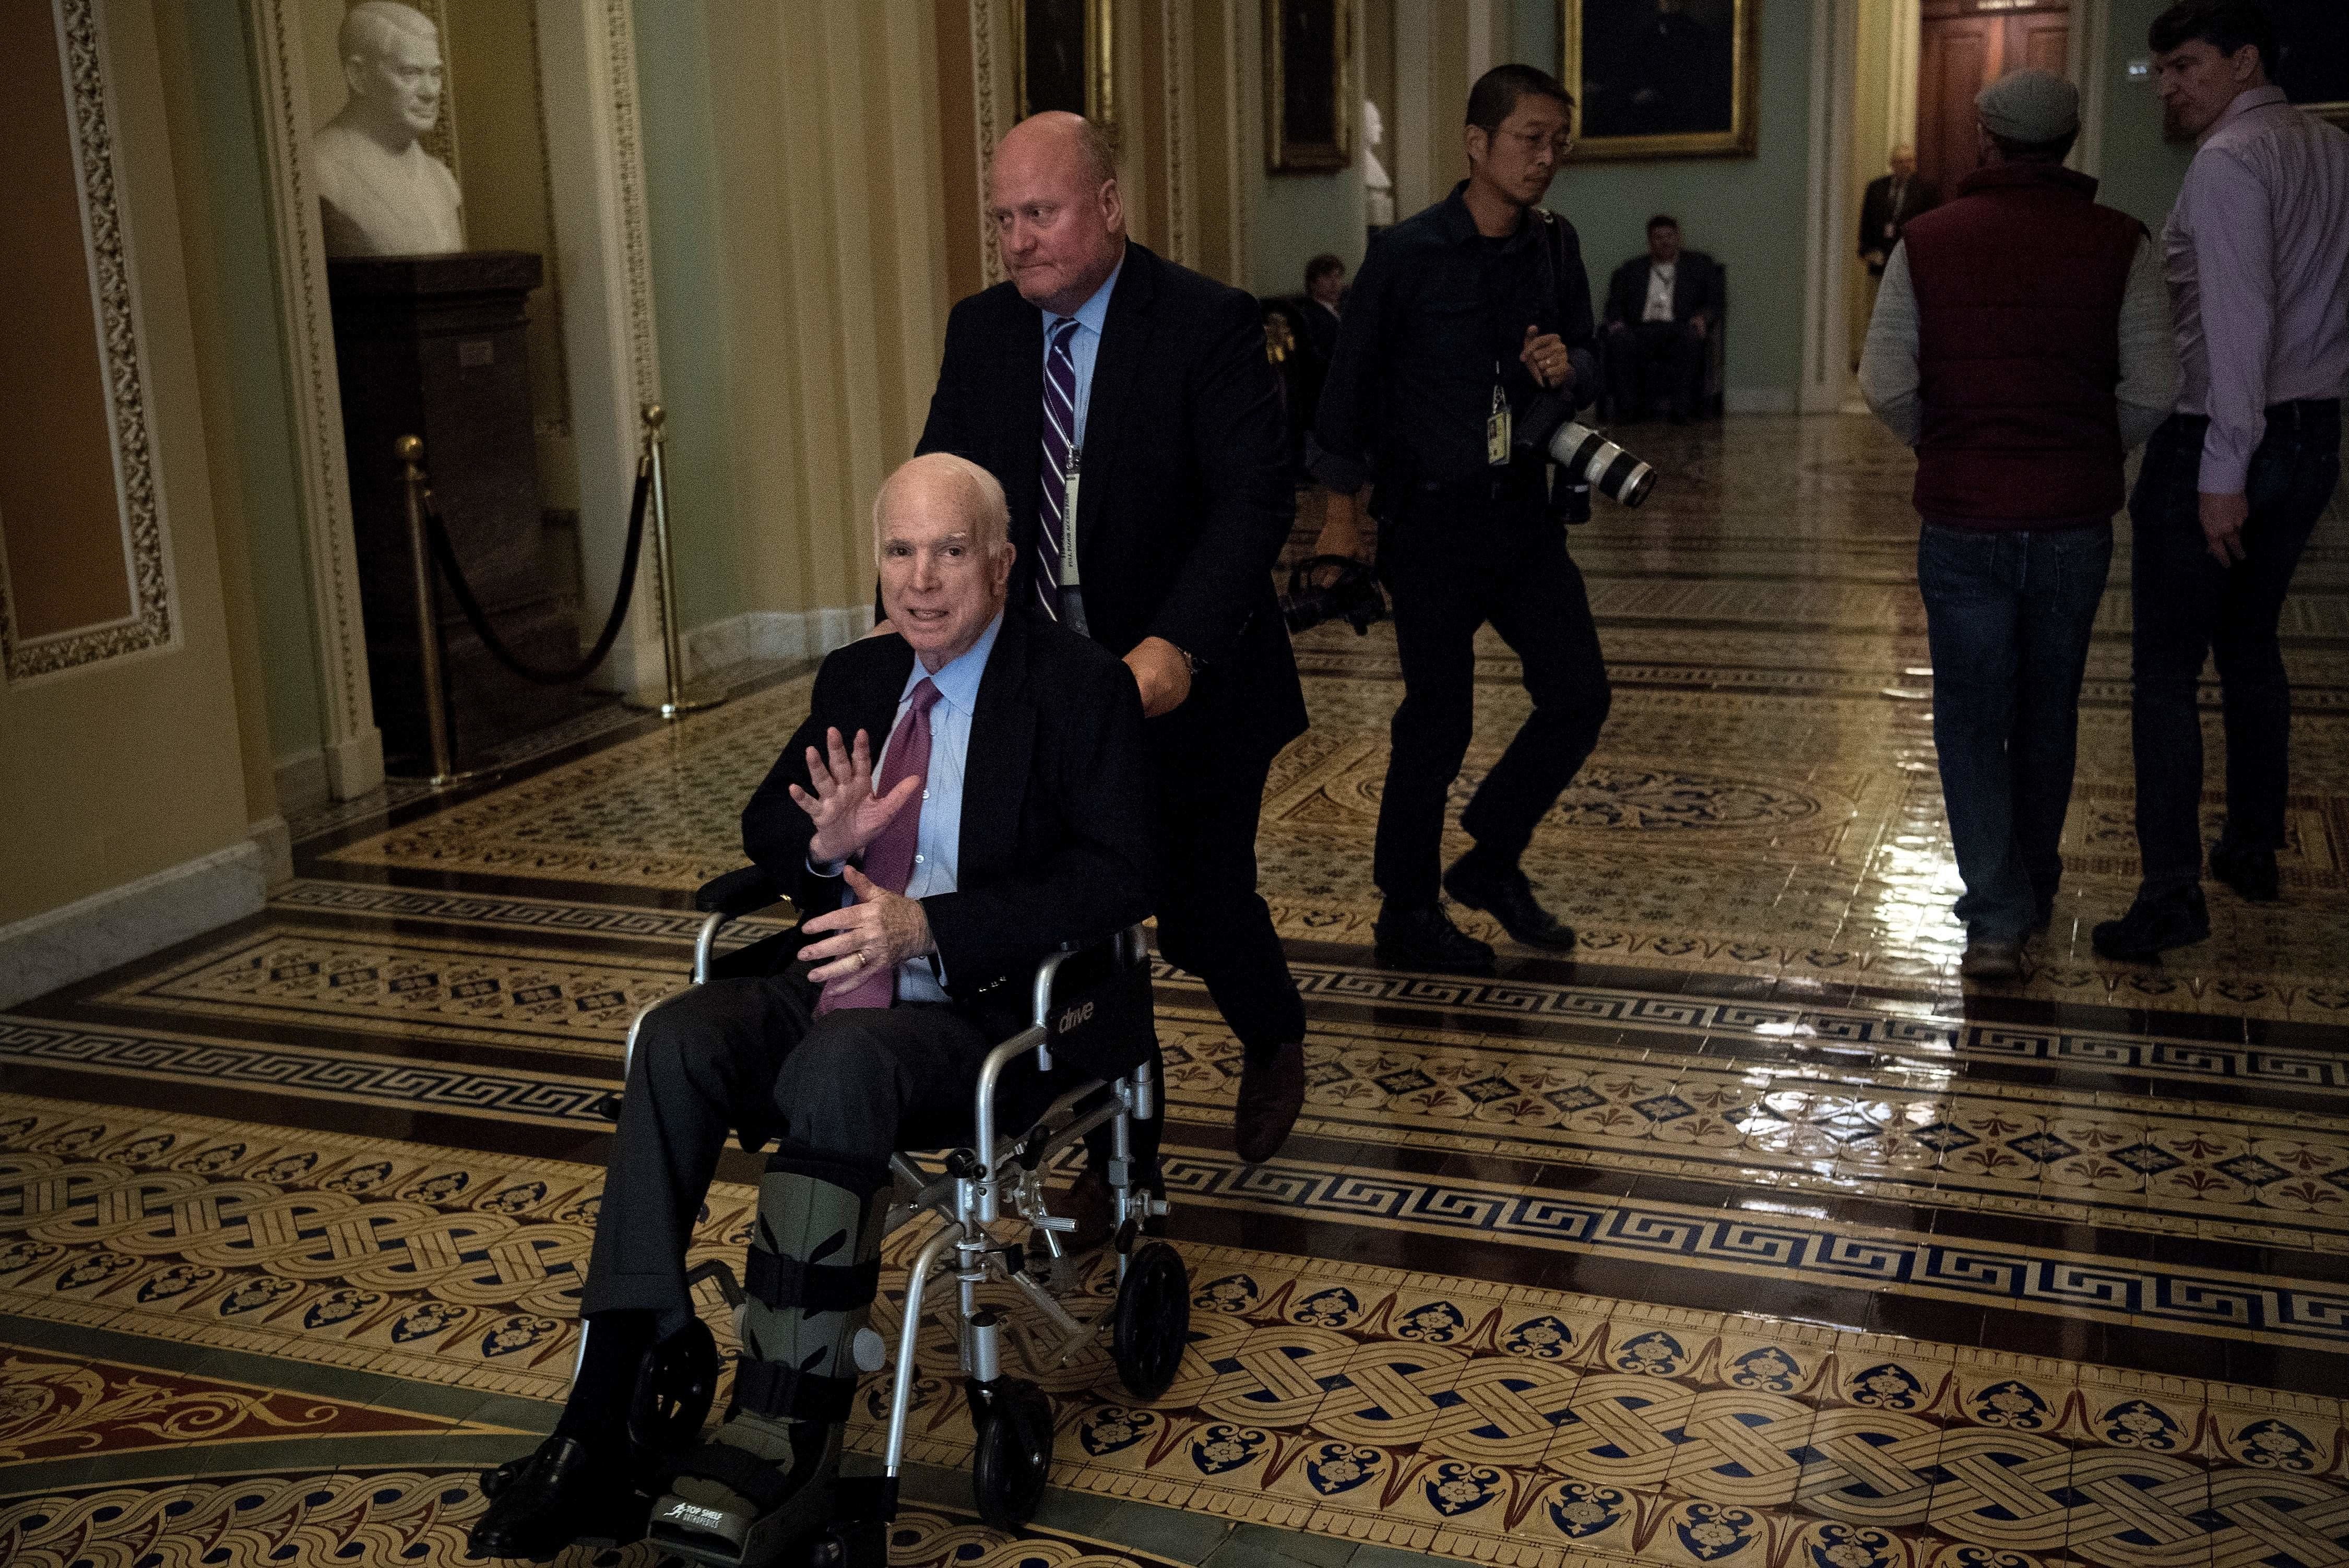 Senator John McCain (R-AZ) uses a wheelchair on Capitol Hill December 1, 2017 in Washington, DC. Donald Trump's tax reform plan has overcome pockets of resistance within Republican ranks, US senators said Friday, setting up a vote that could provide the president with his first major legislative victory.'We have the votes,' Senate Majority Leader Mitch McConnell told reporters as he entered the chamber.  / AFP PHOTO / Brendan Smialowski        (Photo credit should read BRENDAN SMIALOWSKI/AFP/Getty Images)